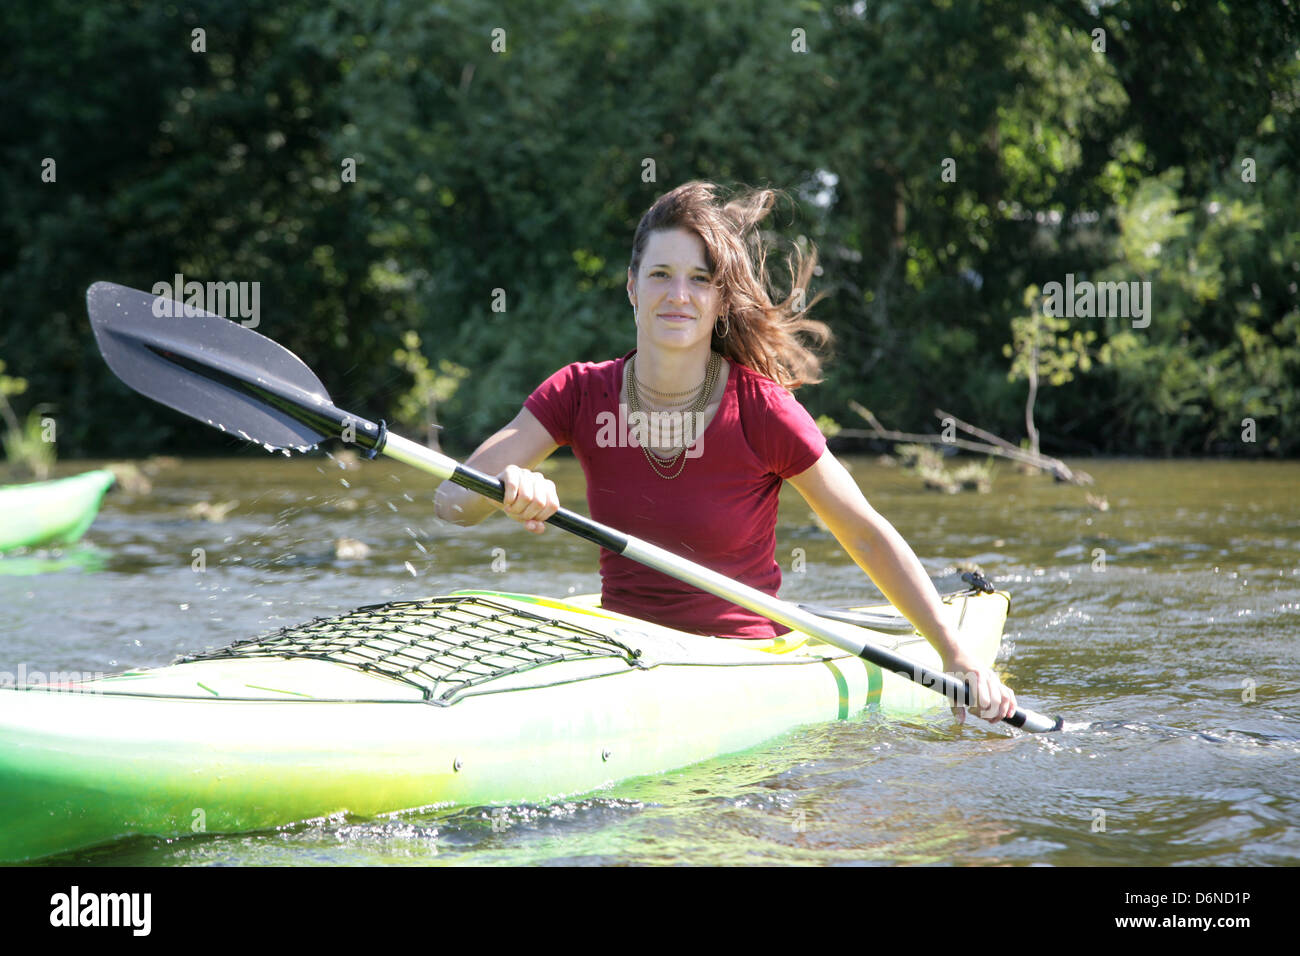 Ploen, Germany, a young woman makes a canoe trip on the Great lake Ploener - Stock Image